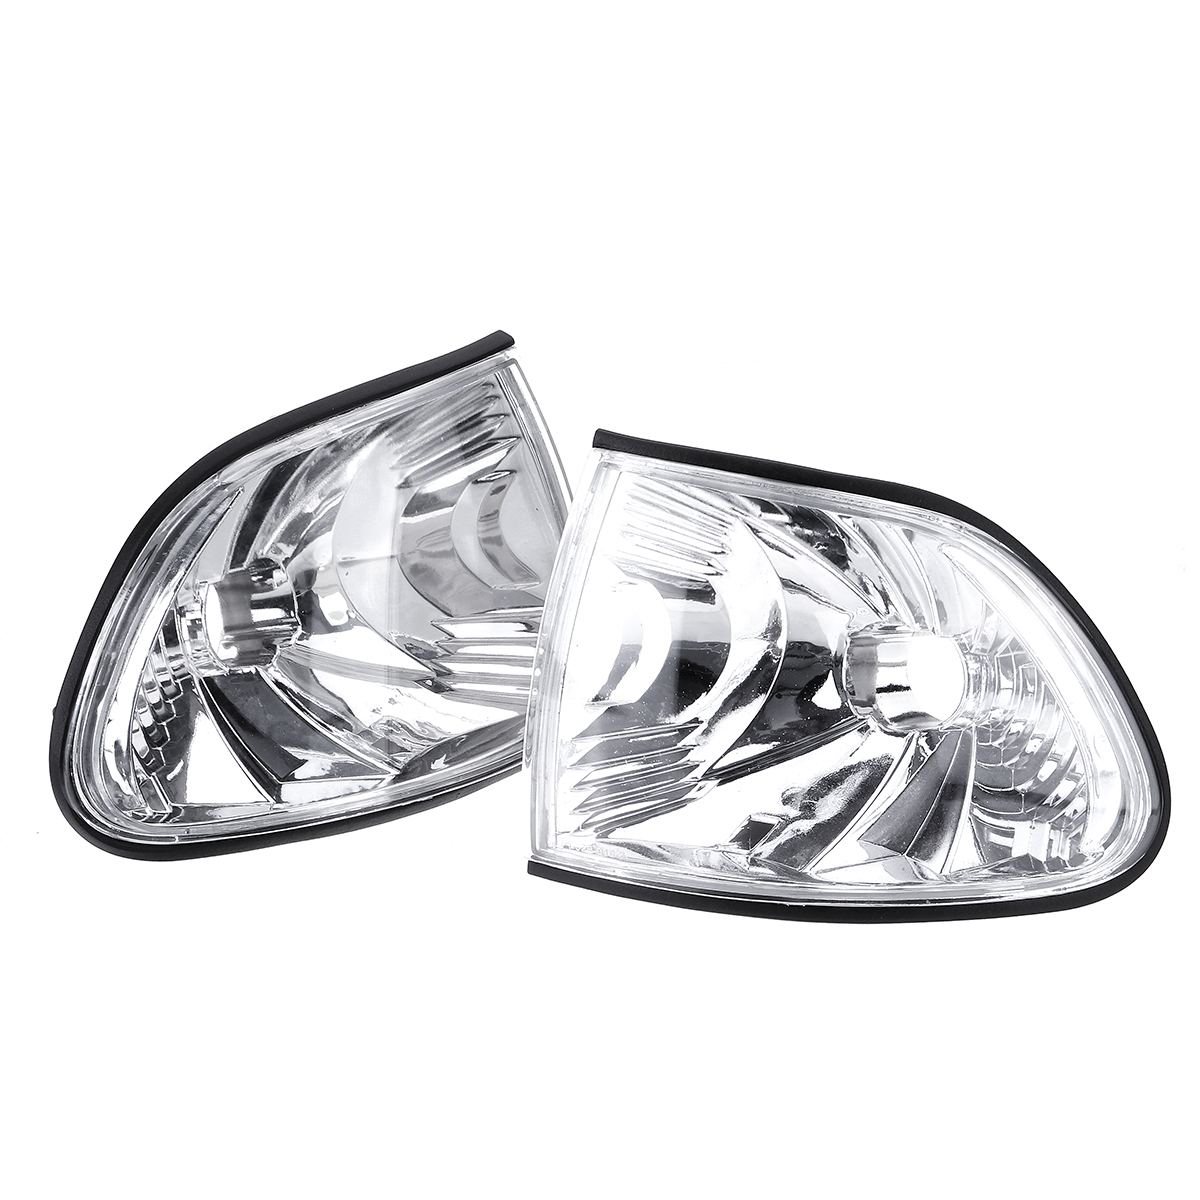 2pcs car parking corner clear lens lights for bmw e38 7